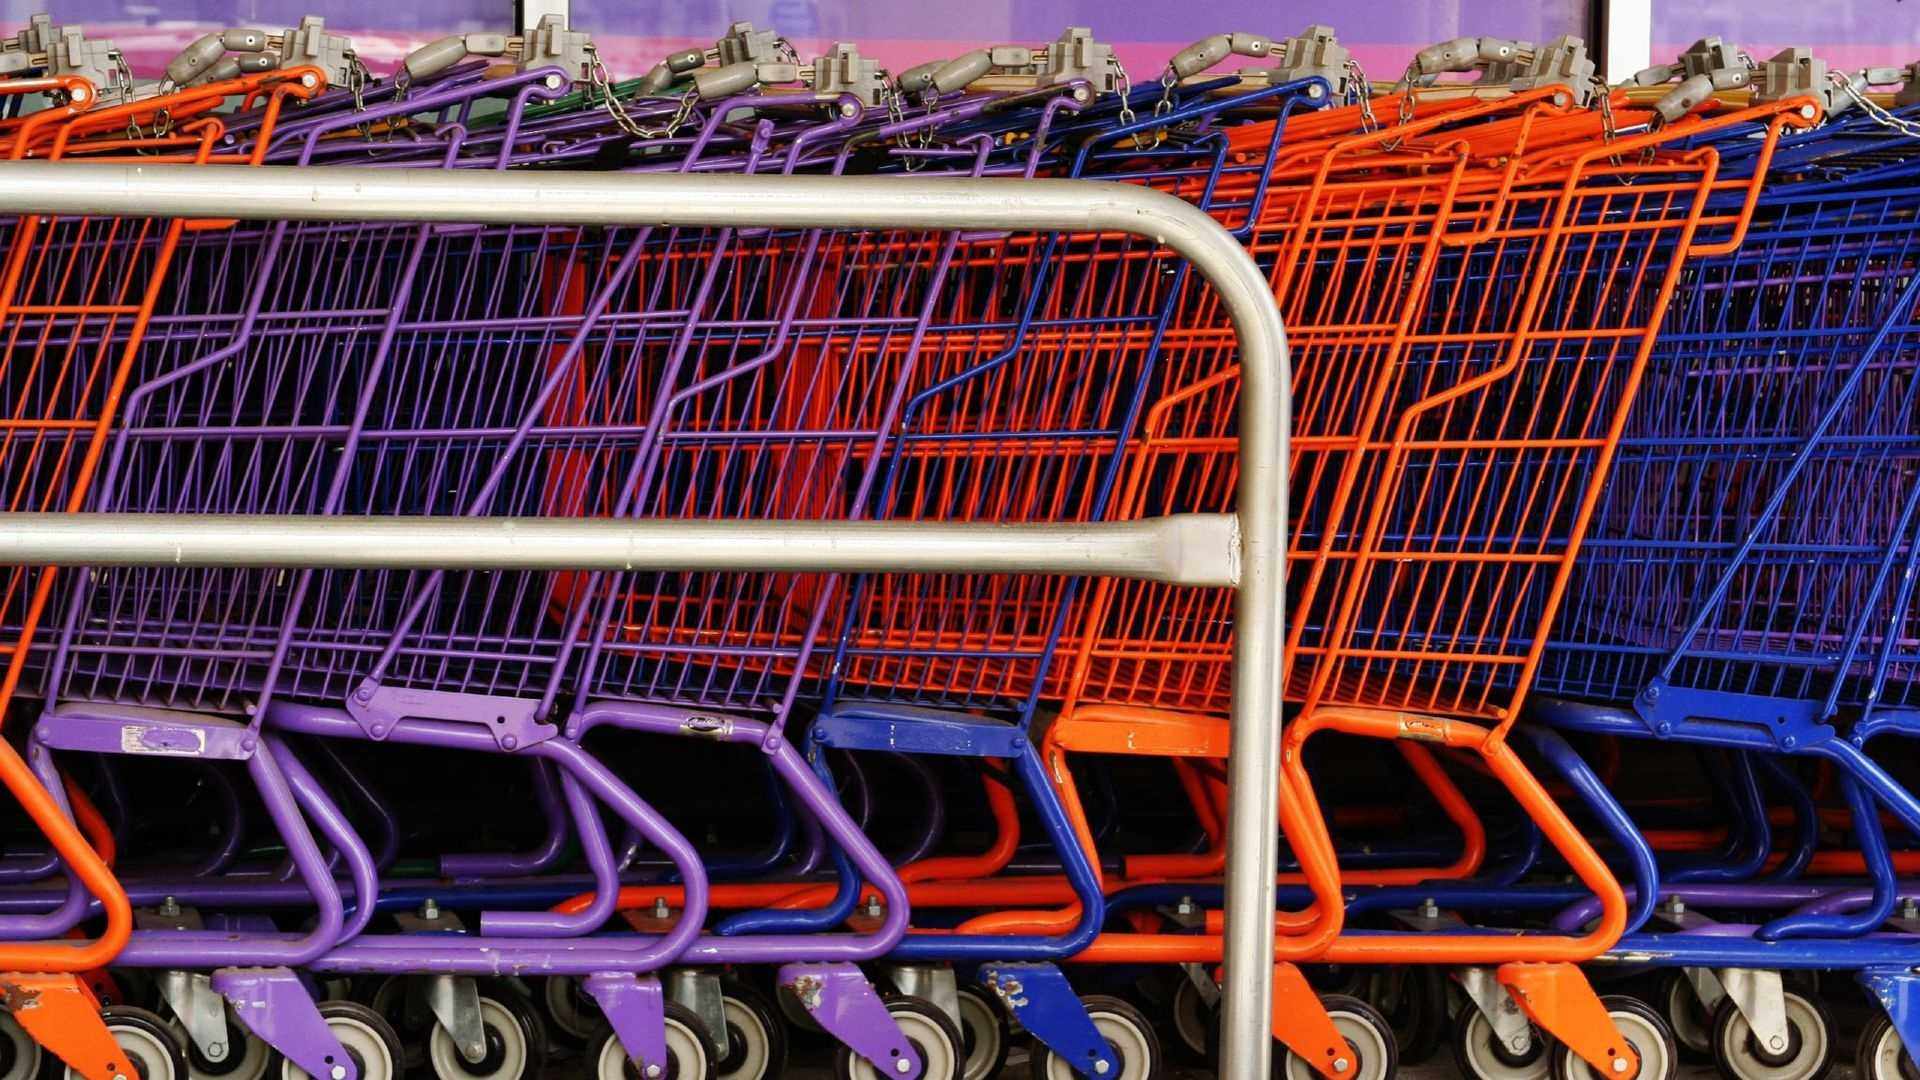 Do you often find your bill at the grocery store far exceeds what you intended to spend? If you have a hard time sticking to the list you made before heading into the store, you could be making too many impulse purchases. Here are nine ways to save money at the grocery store, from Woman's Day.